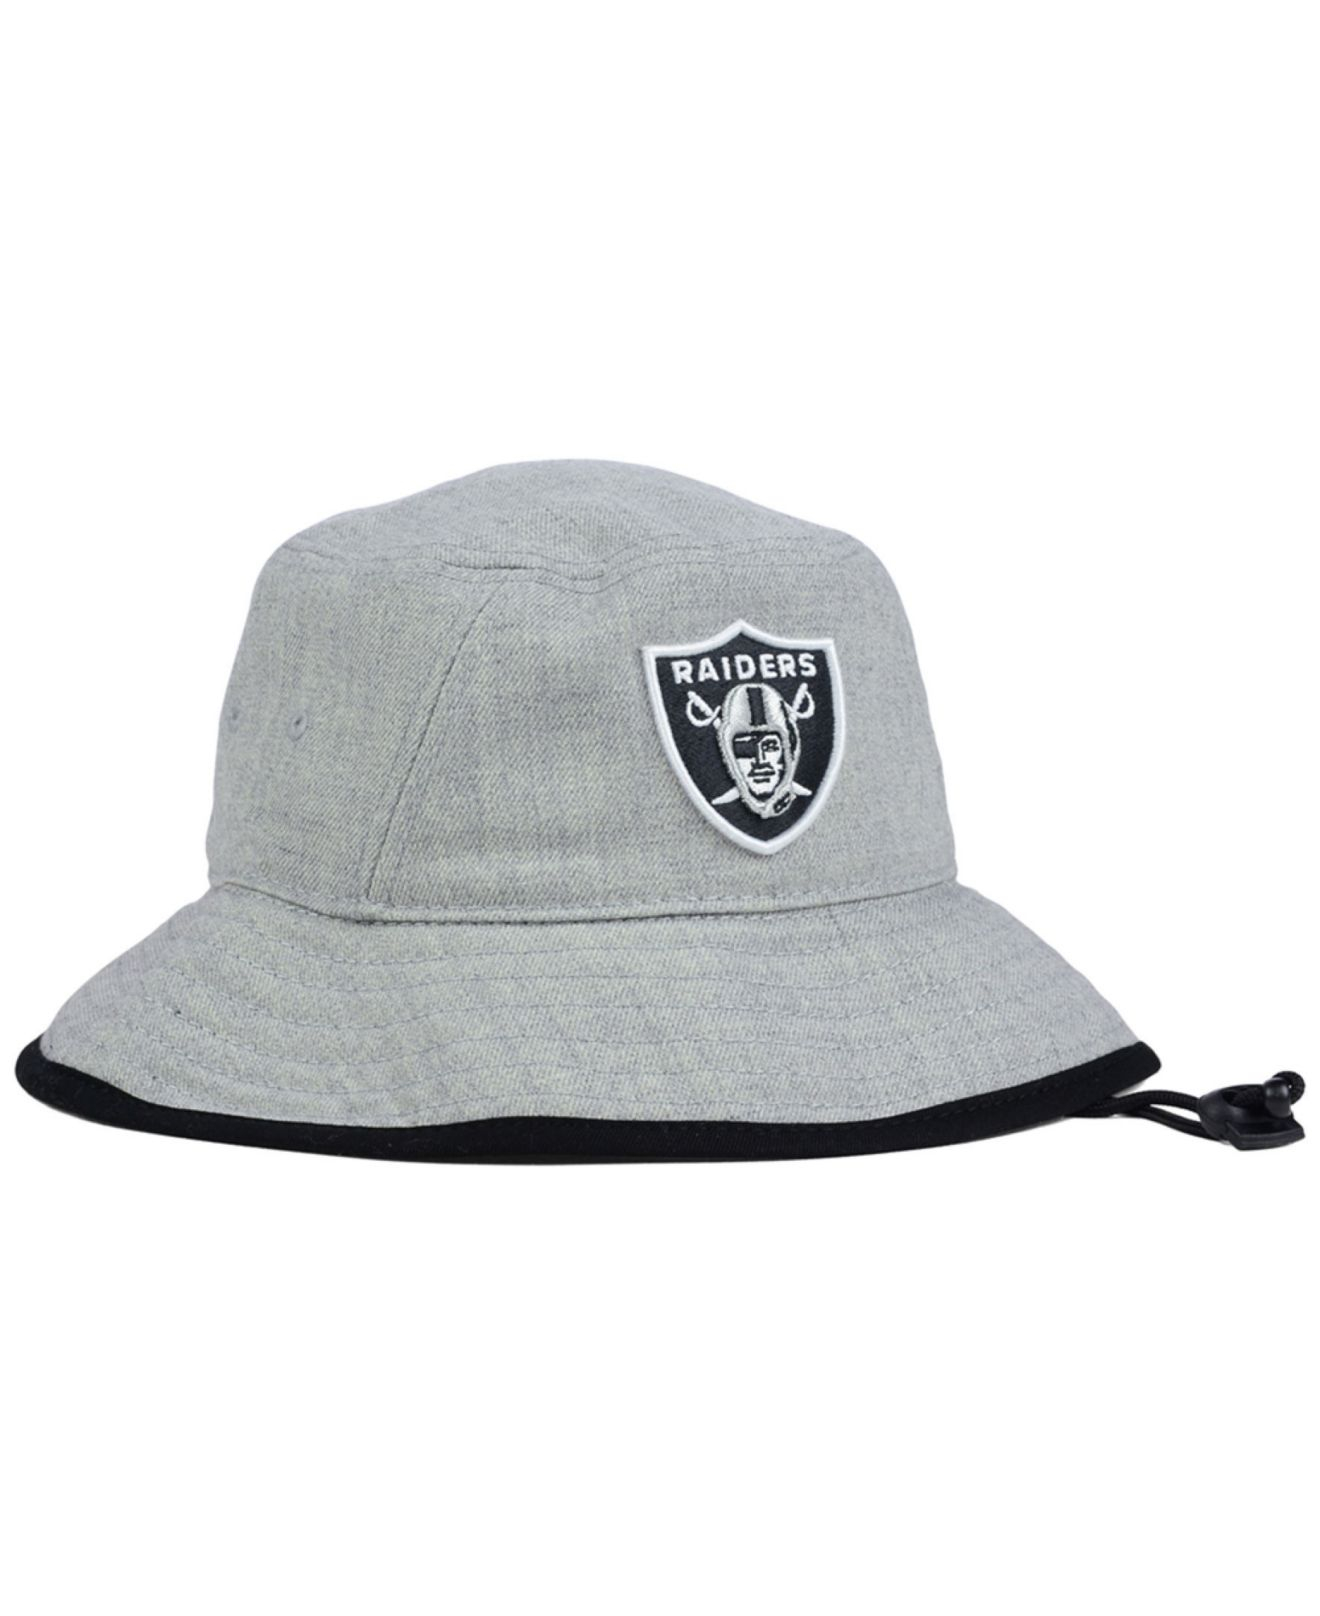 36c8d9a3df305 ... cheapest lyst ktz oakland raiders nfl heather gray bucket hat in gray  892a0 ce287